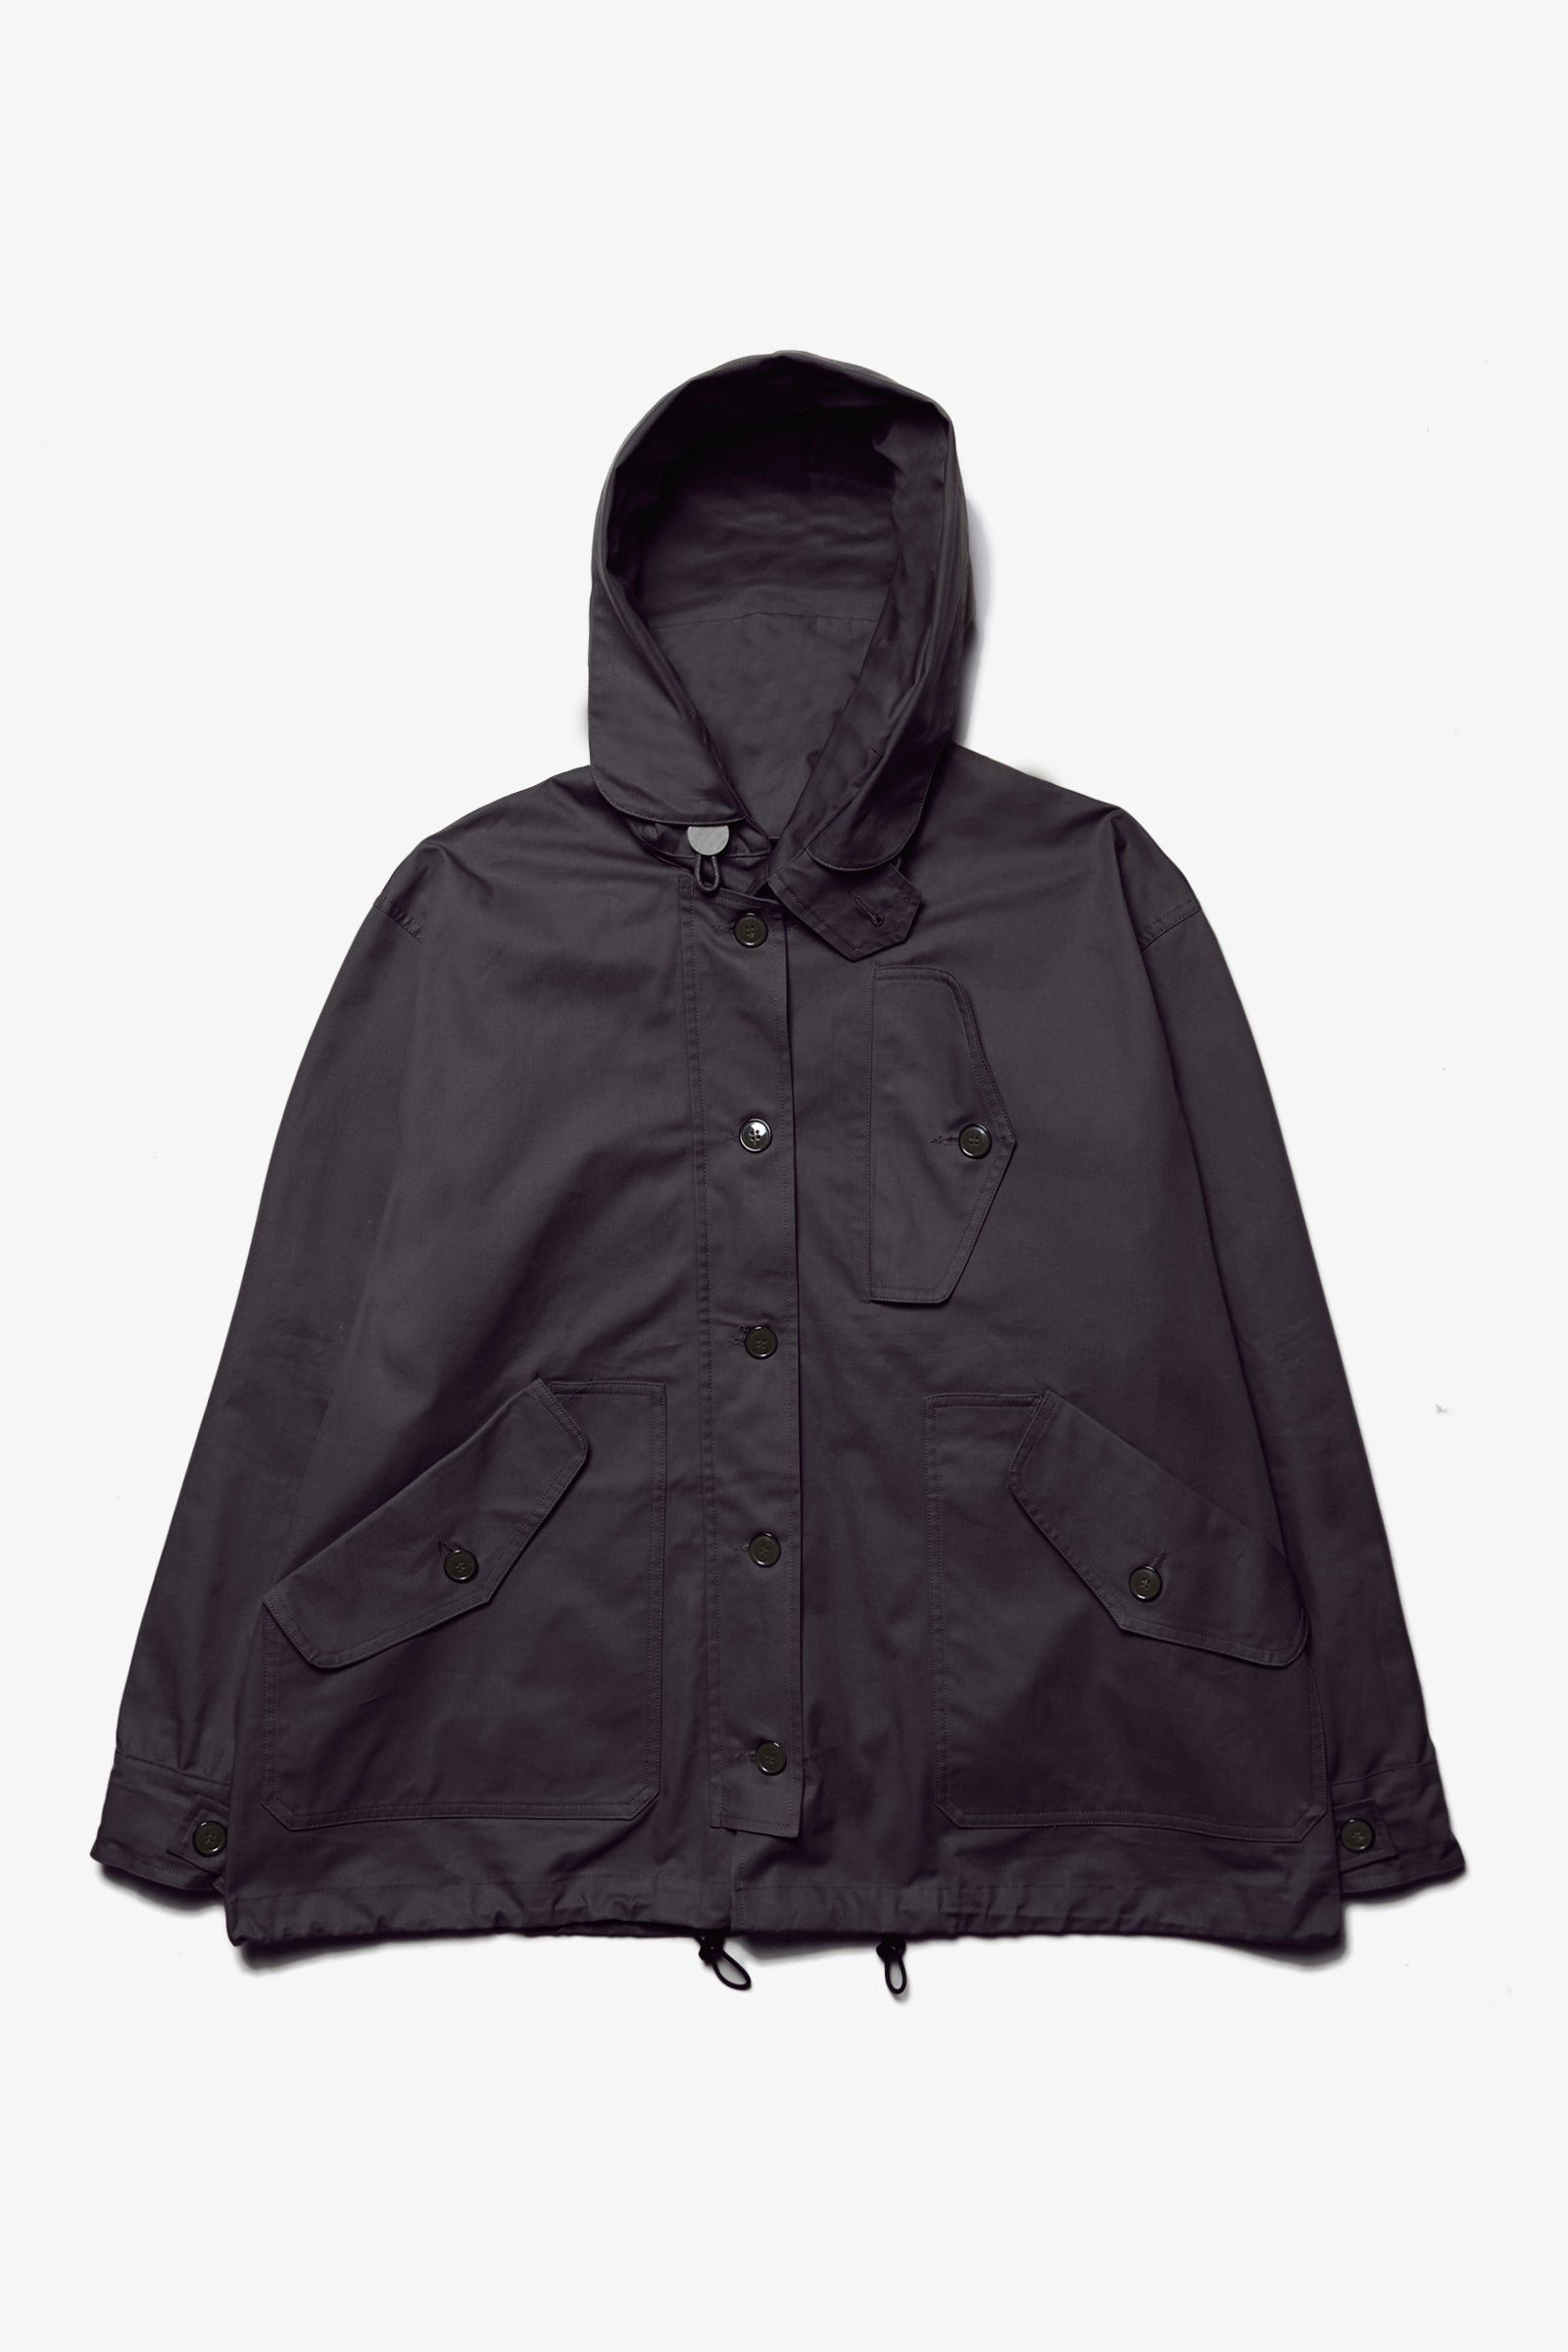 Outstanding & Co. - RAF Short Hooded Parka - Black